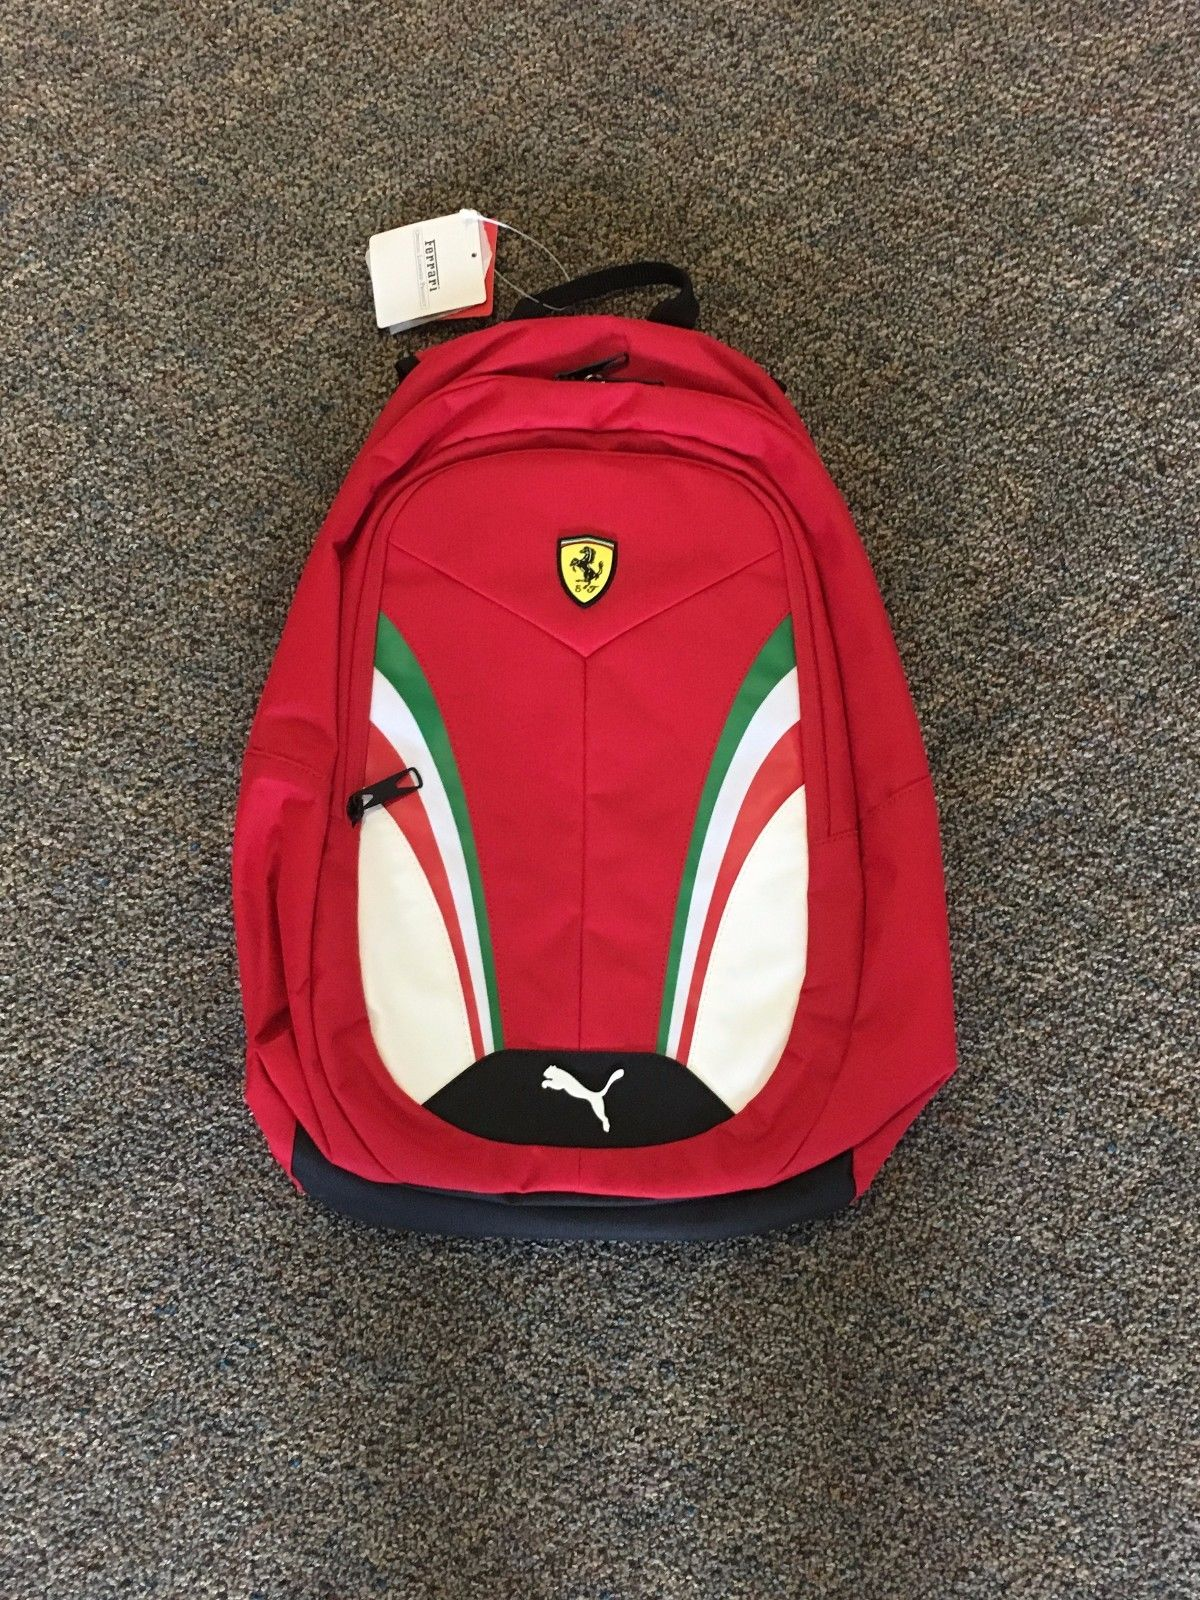 356be84f30 Puma PUMA Scuderia Ferrari Red Team Backpack Size one size - Bags   Luggage  for Sale - Grailed